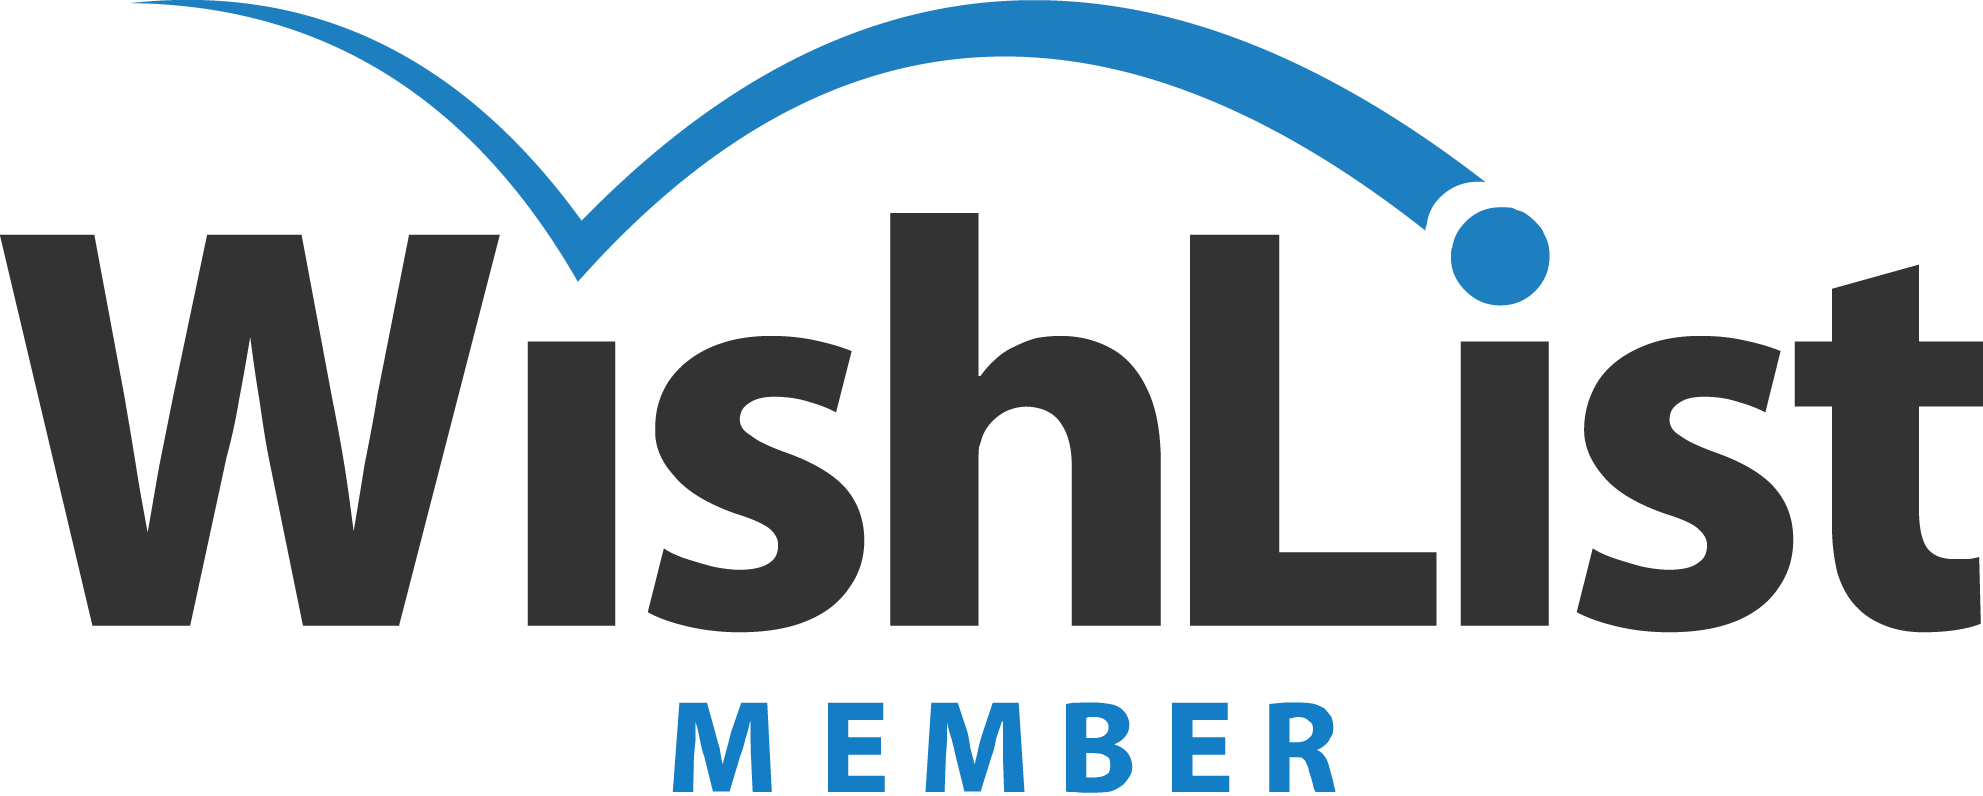 Brand image of Whislist member with black letter for the brand name and blue on top of the letters and blue word for member and graybackground